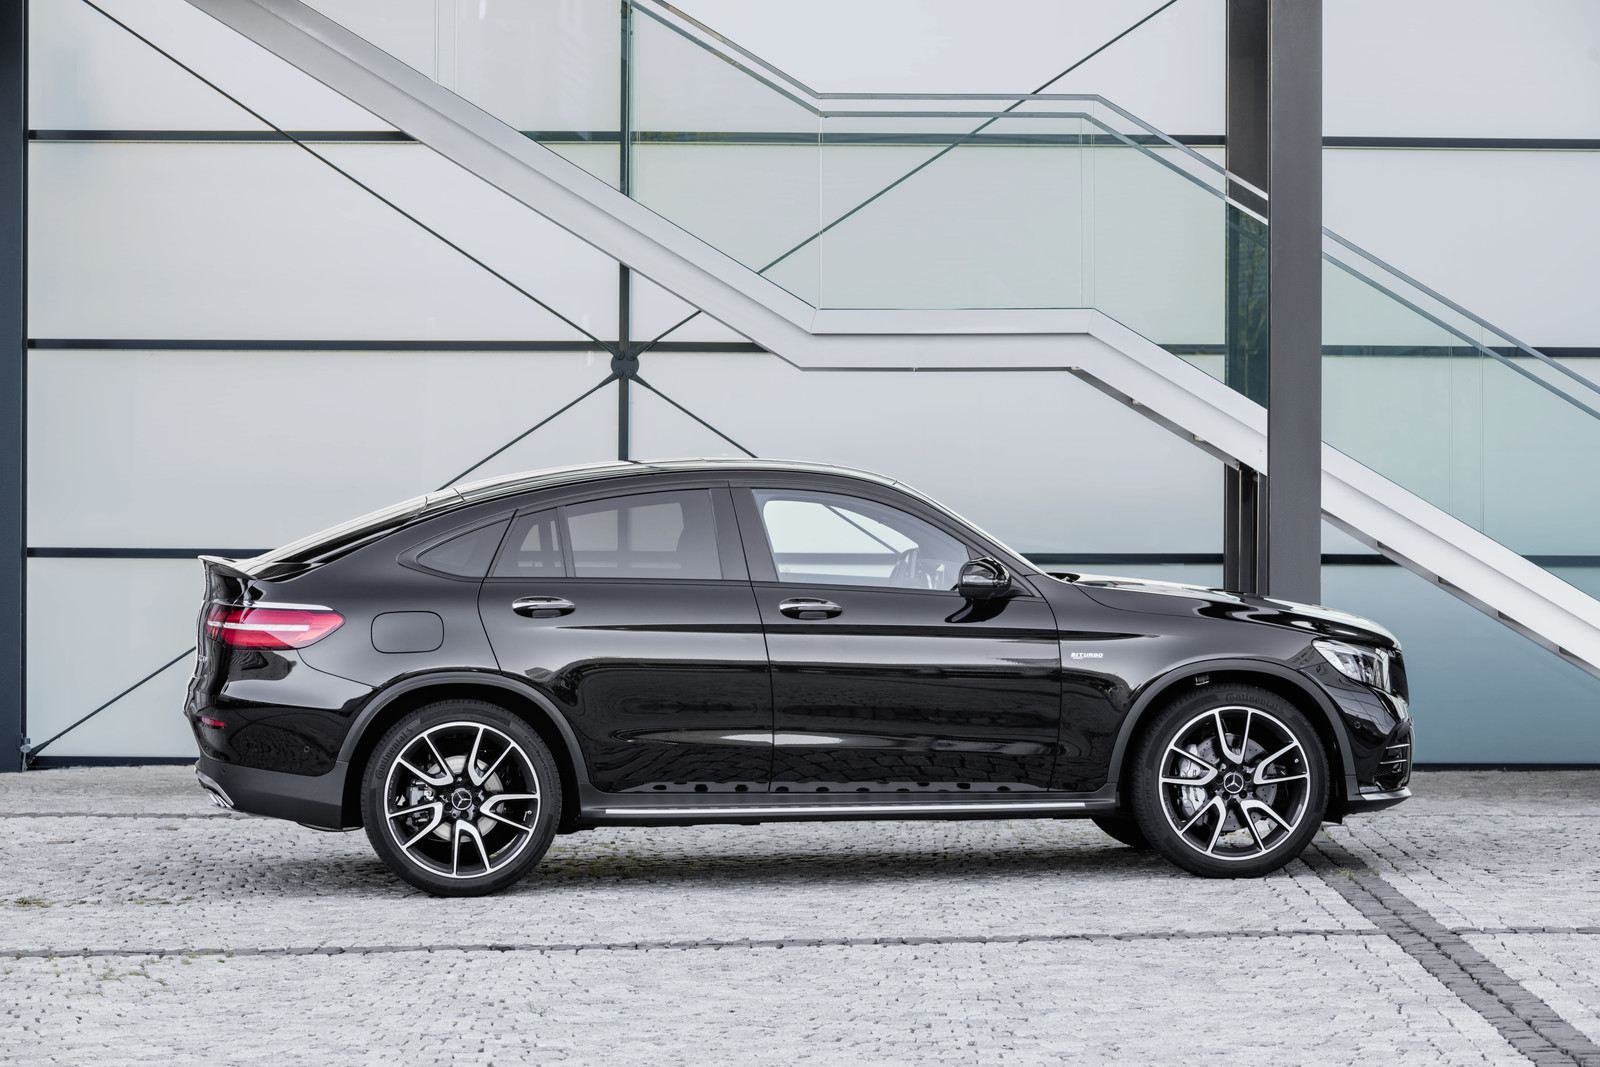 Foto de Mercedes-AMG GLC 43 4MATIC Coupé (15/24)